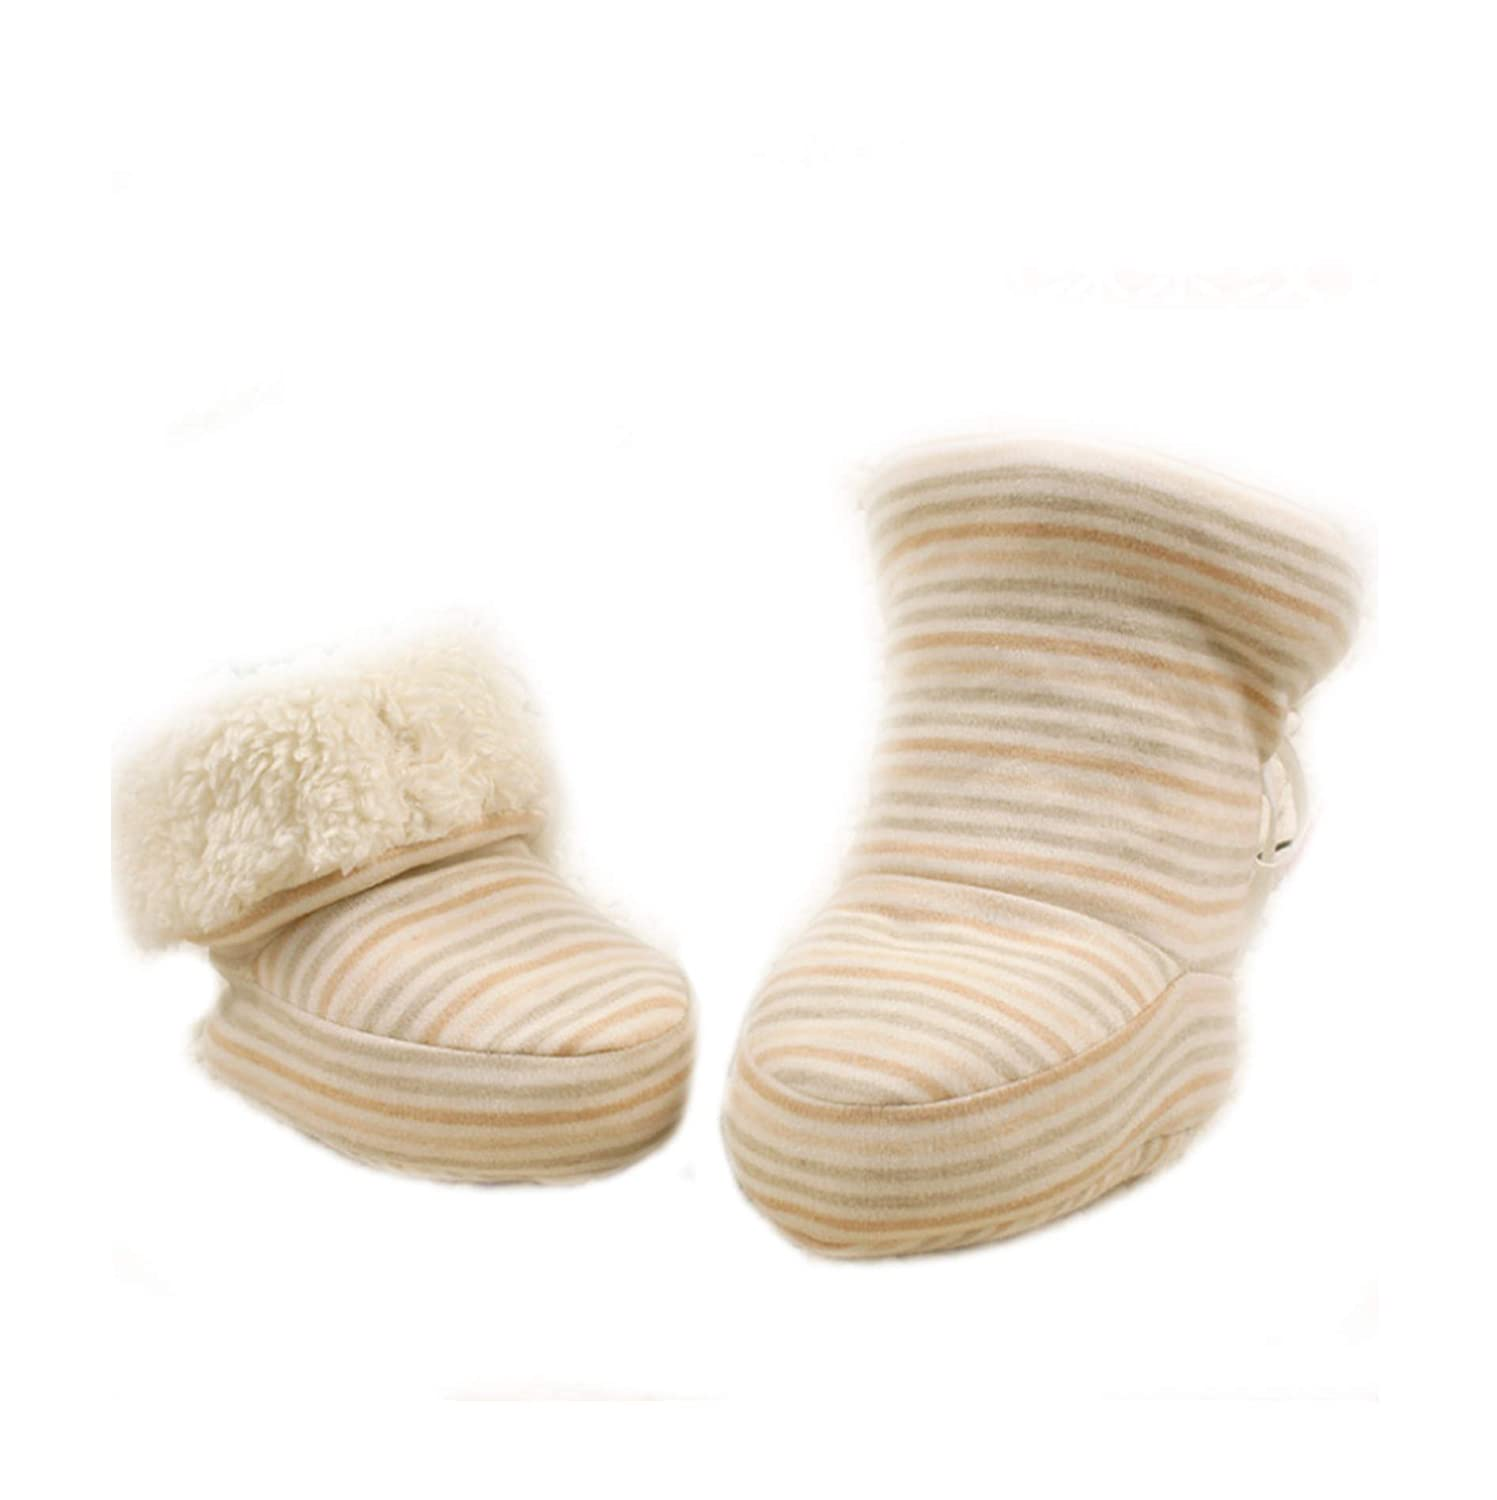 HorBous Chaussons Chaud Hiver Naissance Bottillons Hiver Bebe Boots Hiver Bebe Bottes Hiver Fourre Bebe 0-12 Mois Bebe